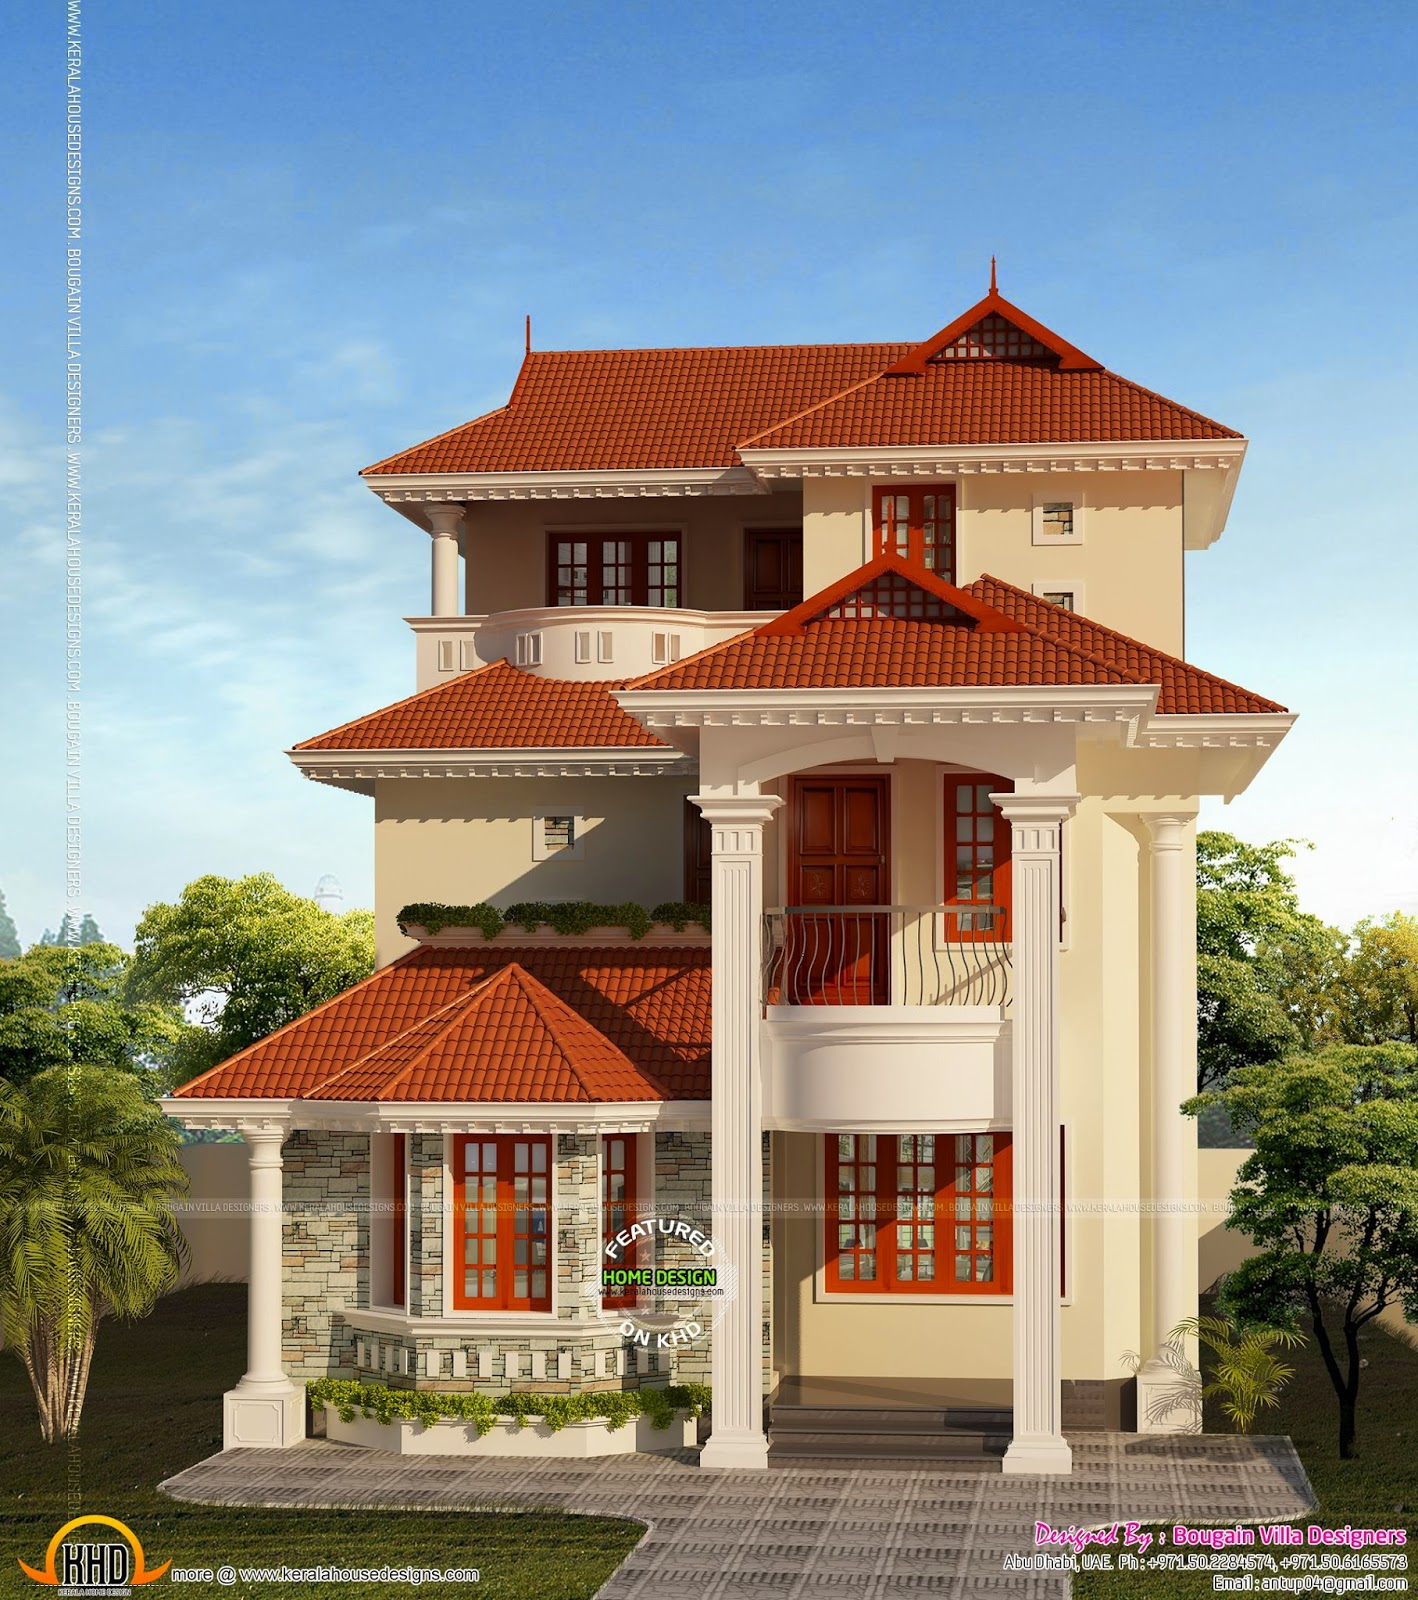 Small plot house plan kerala home design and floor plans for Small home plan in kerala